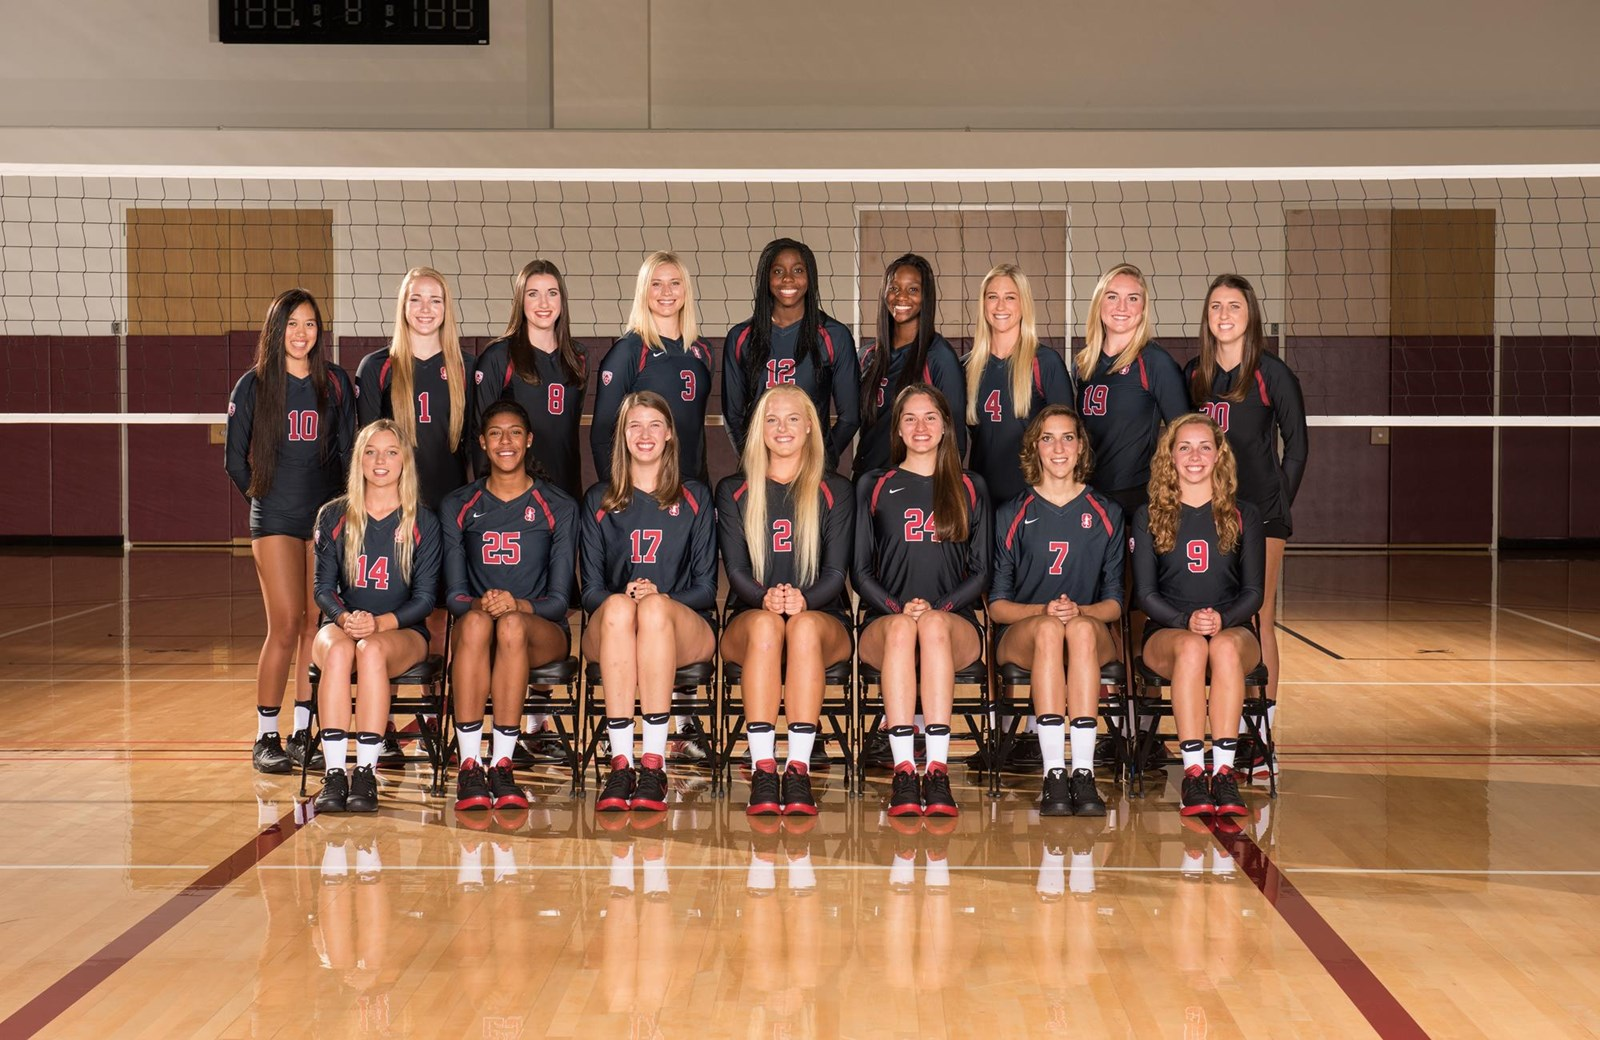 2016 Women S Volleyball Roster Stanford University Athletics